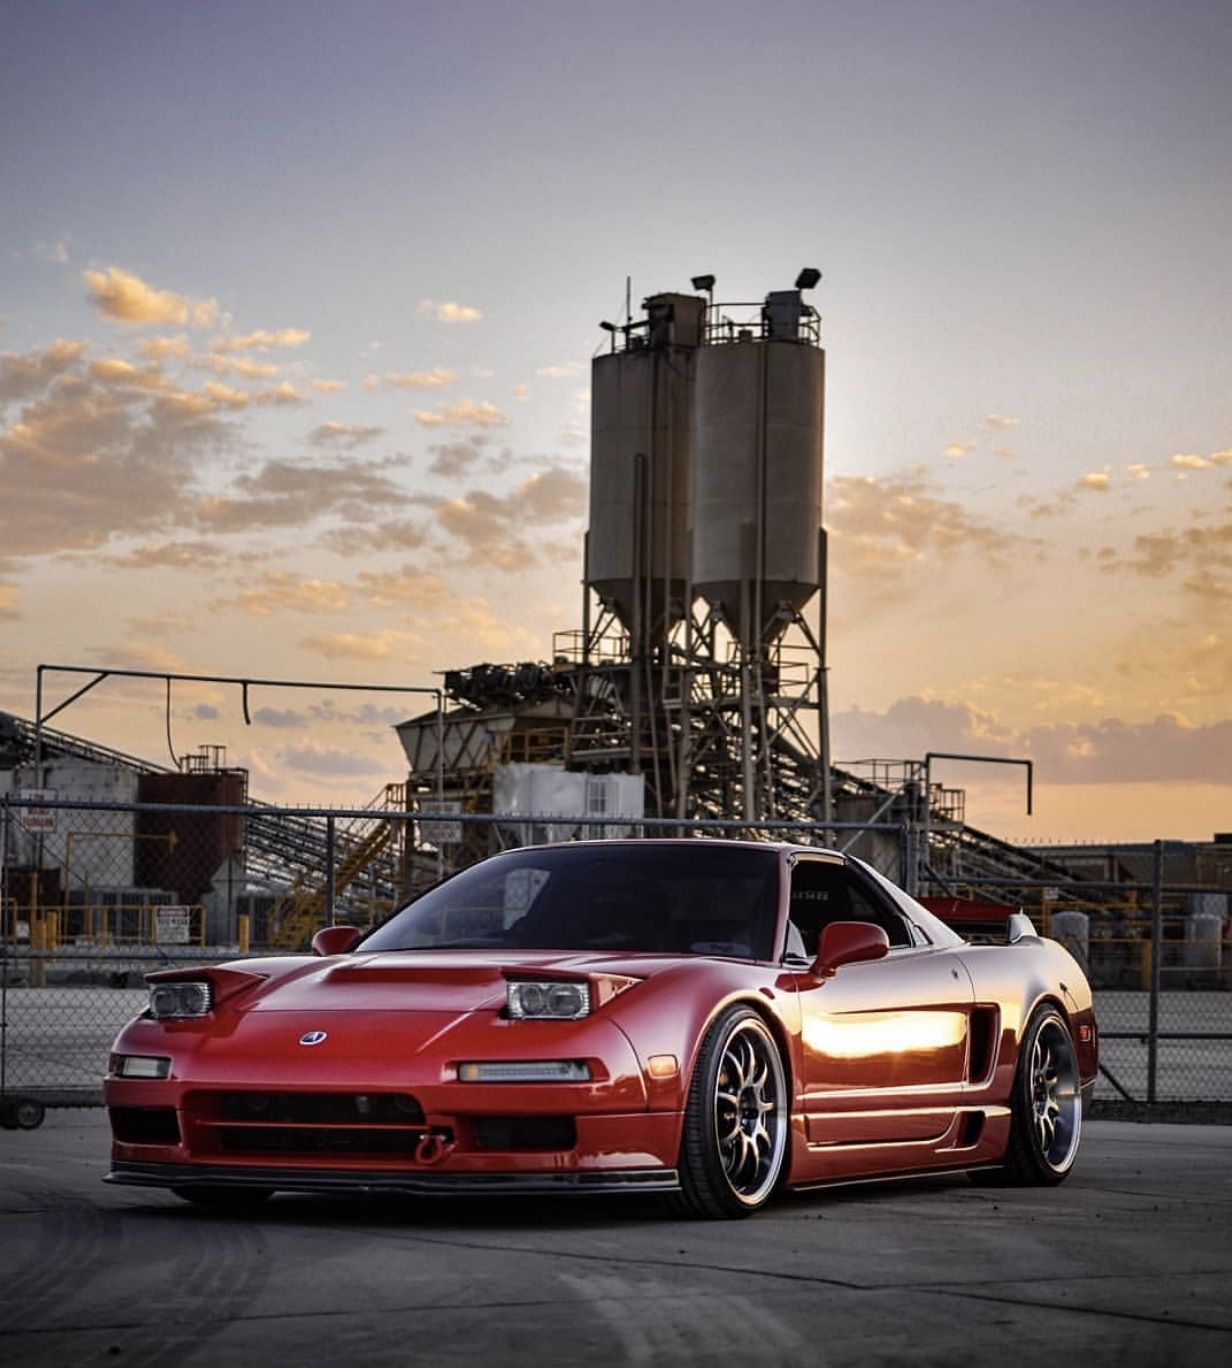 Pin By Keng82us . On Nsx (With Images)